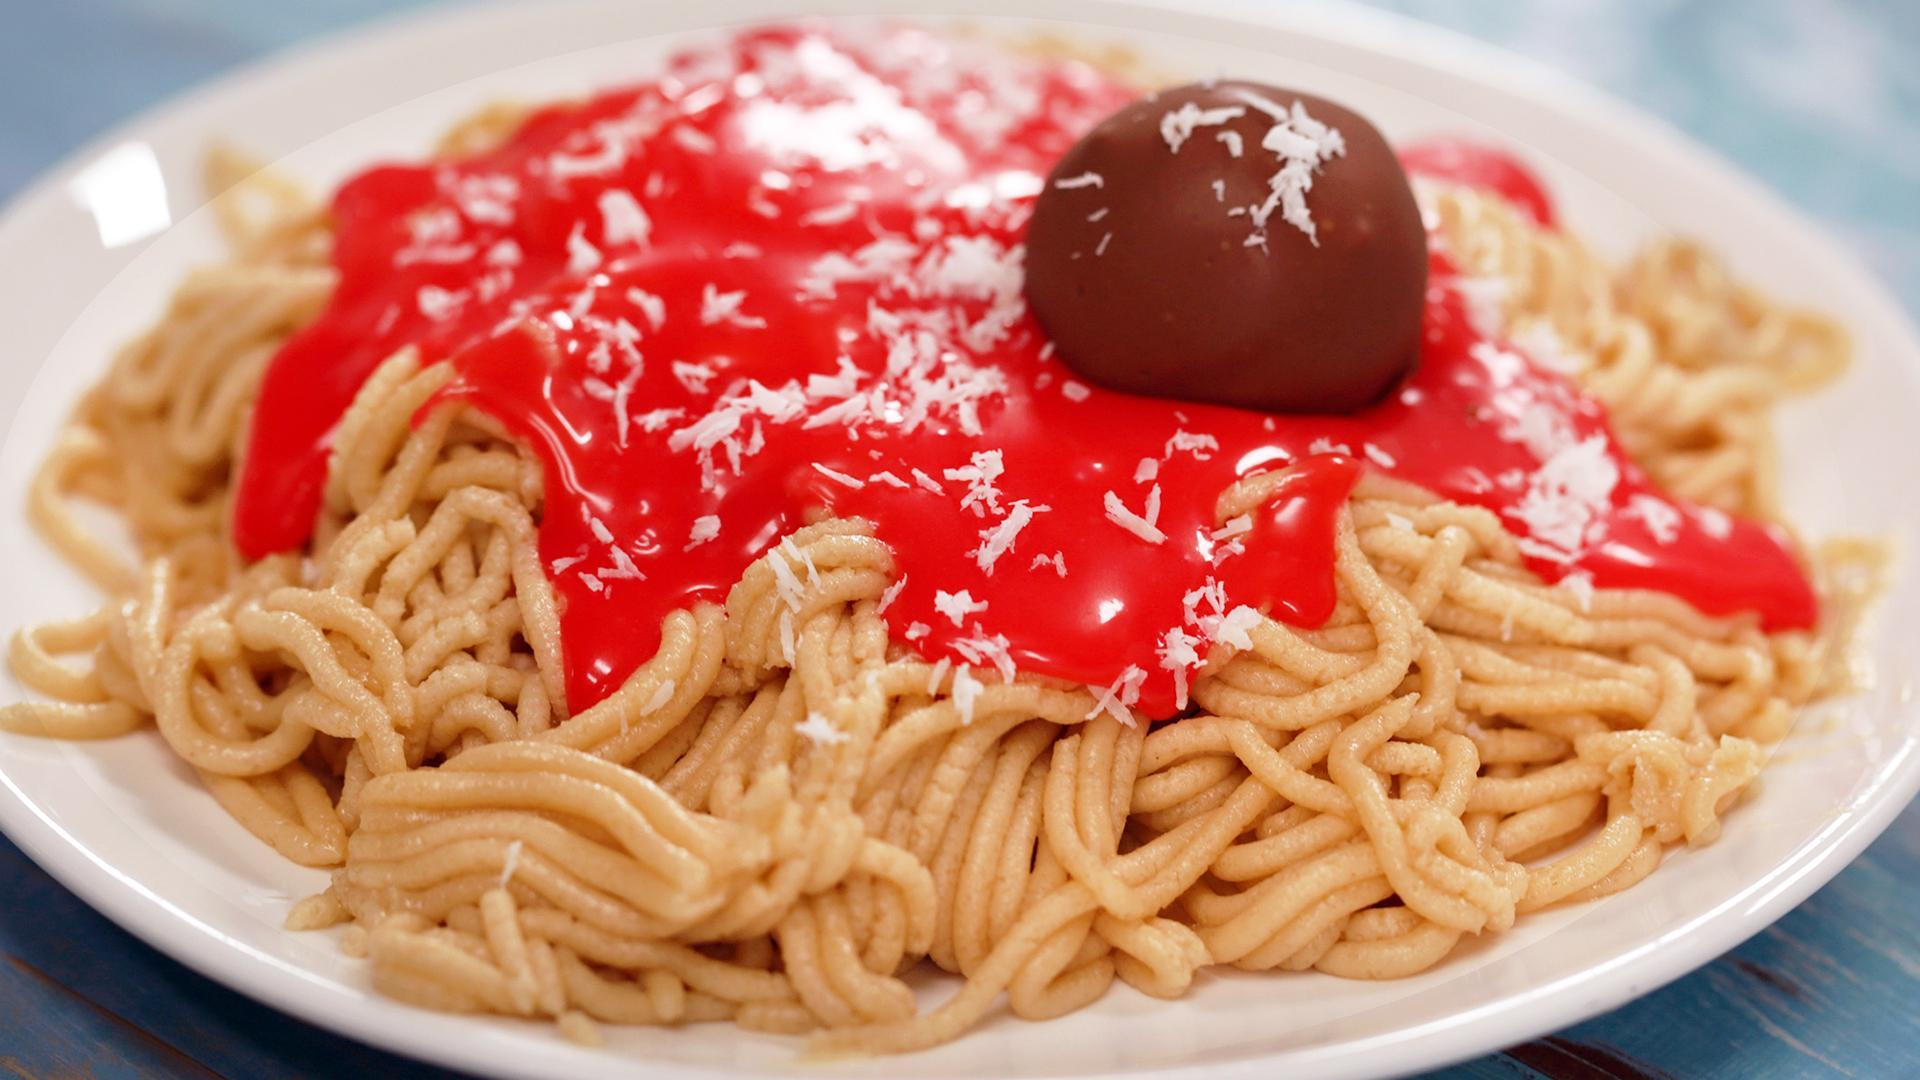 How to Make Cookie Dough Spaghetti and Meatballs